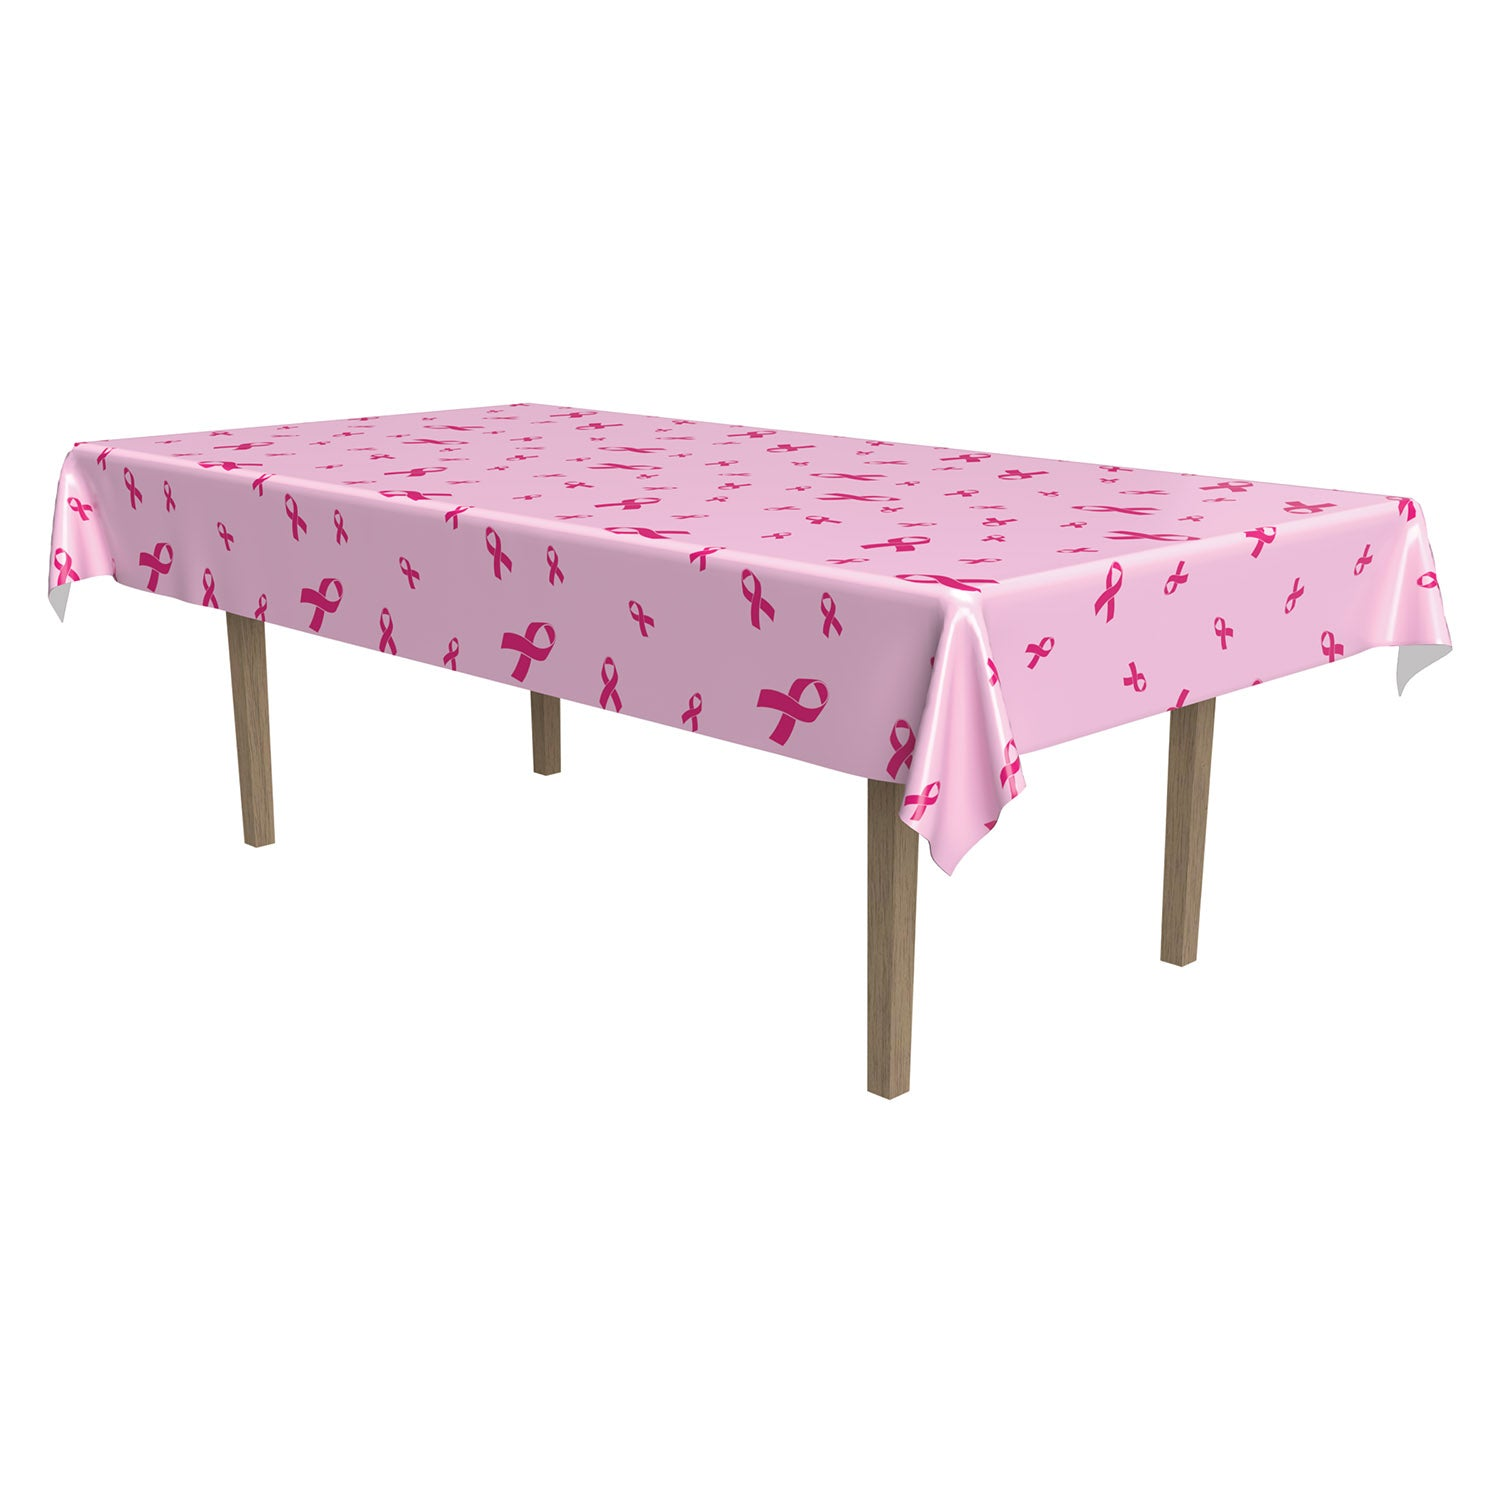 Pink Ribbon Tablecover by Beistle - Pink Ribbon Theme Decorations